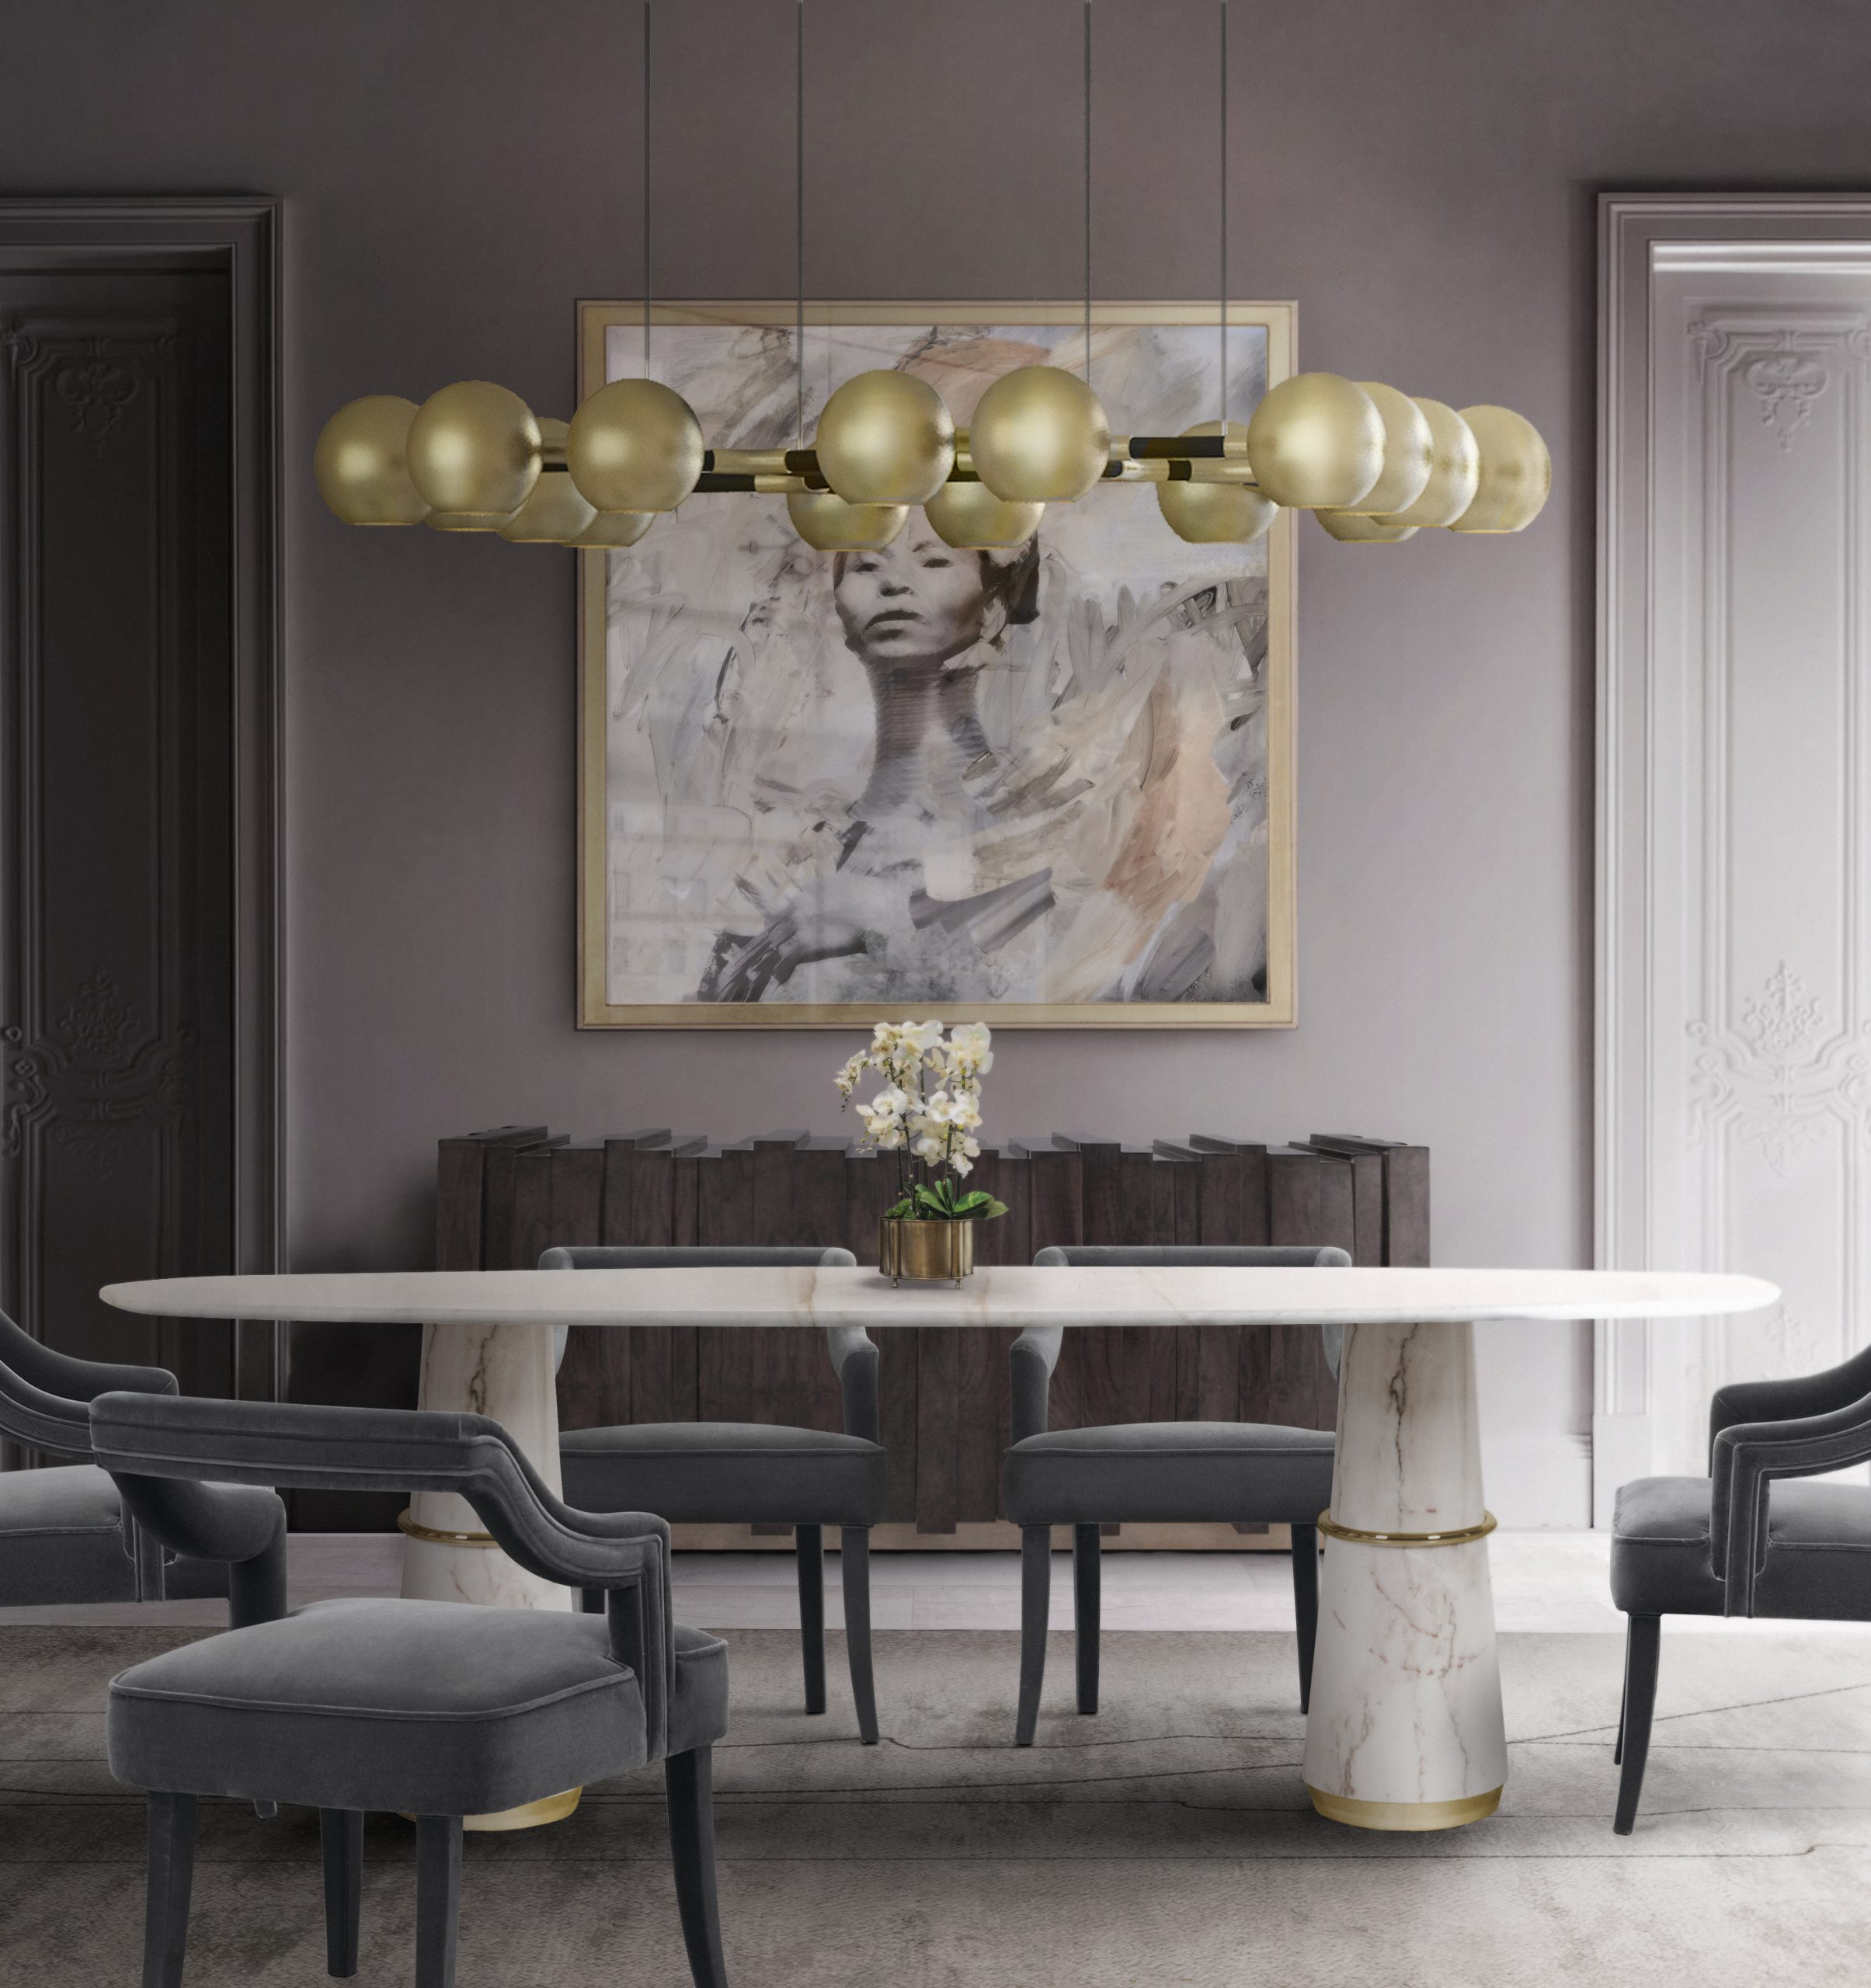 20 Dining Chairs You Will Need For A Modern Dining Room dining chairs 20 Dining Chairs You Will Need For A Modern Dining Room Agra Dining Table II  Horus Suspension Light  Oka Dining Chair  Kalina Rug scaled